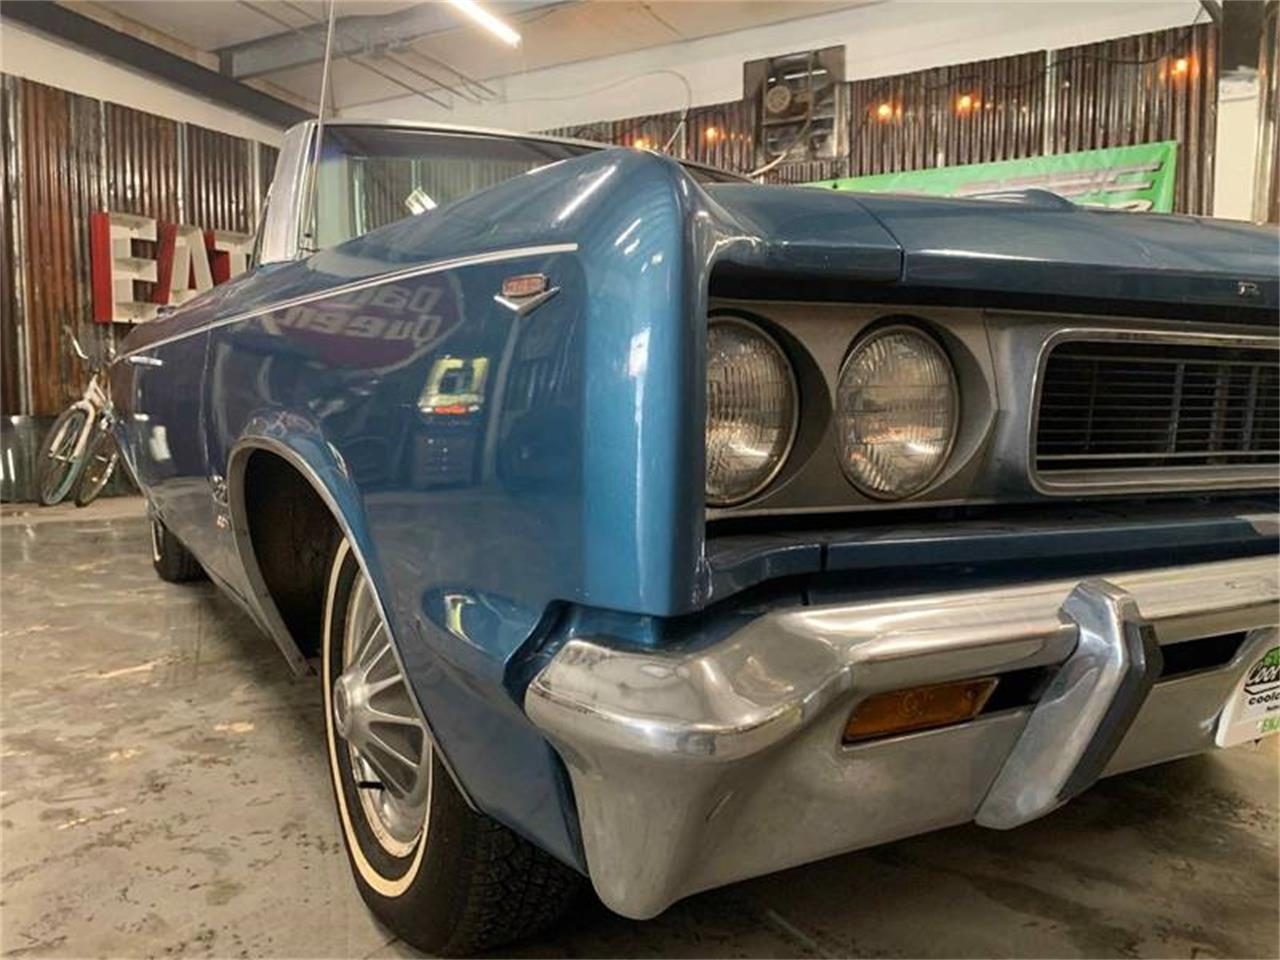 Large Picture of '67 Rambler Rebel located in Redmond Oregon - $19,500.00 - Q18S